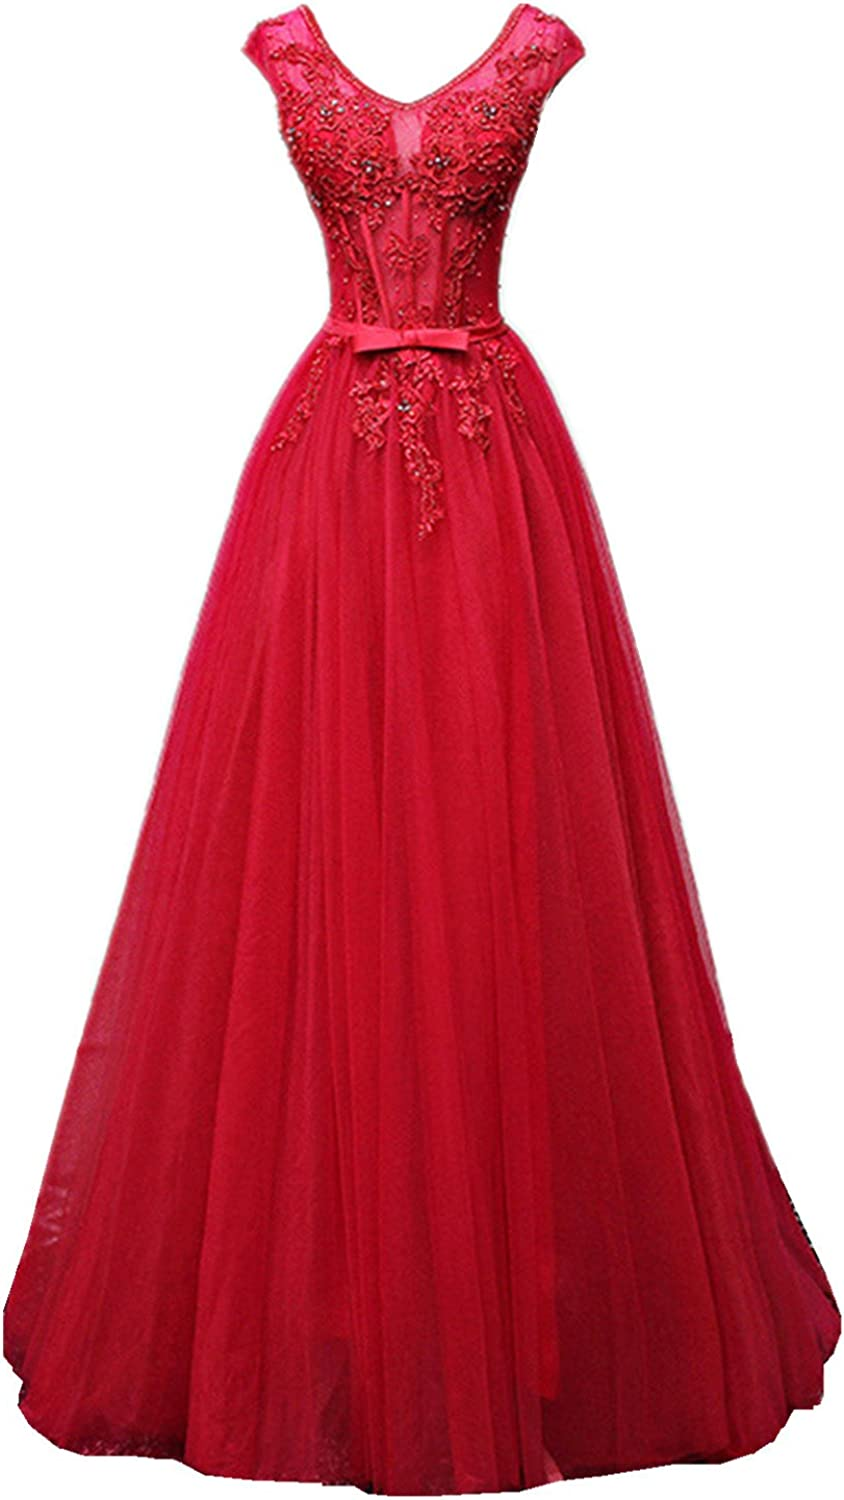 XSWPL Elegant Womens Lace Prom Dresses with Beaded Cap Sleeves Tulle Evening Gowns